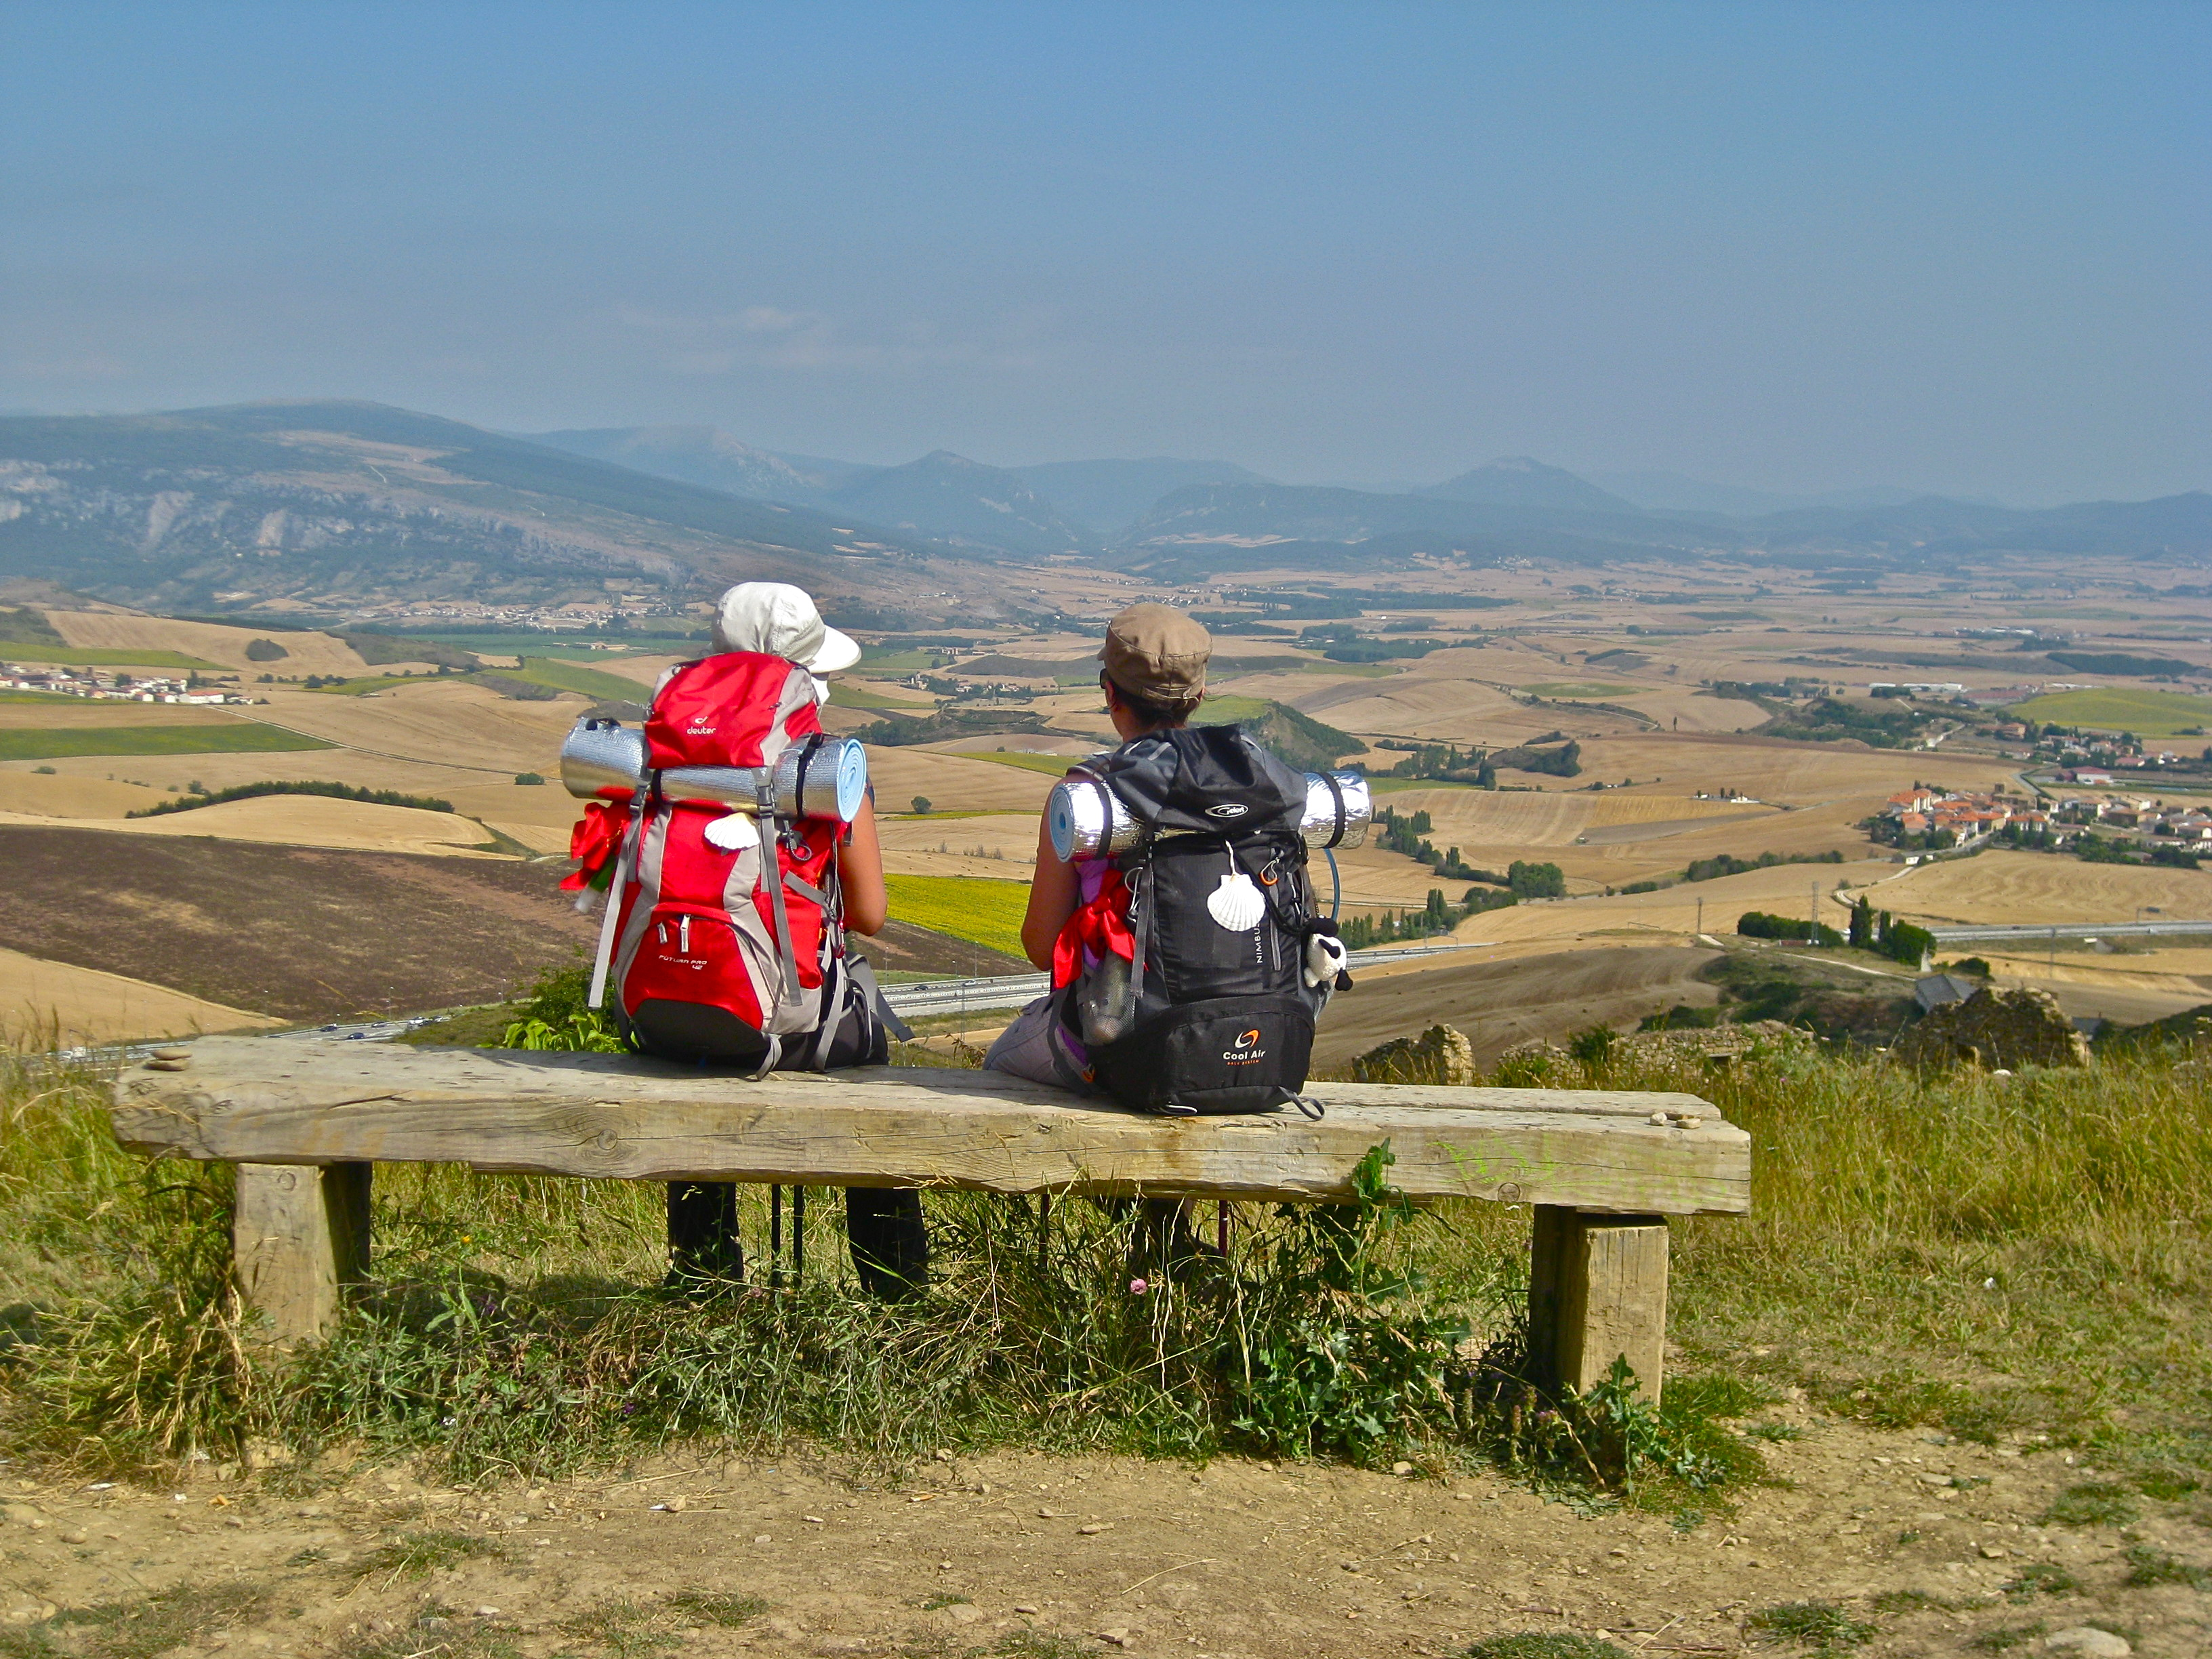 Finding Your Way: 4 More Lessons from the Camino de Santiago, Part 4